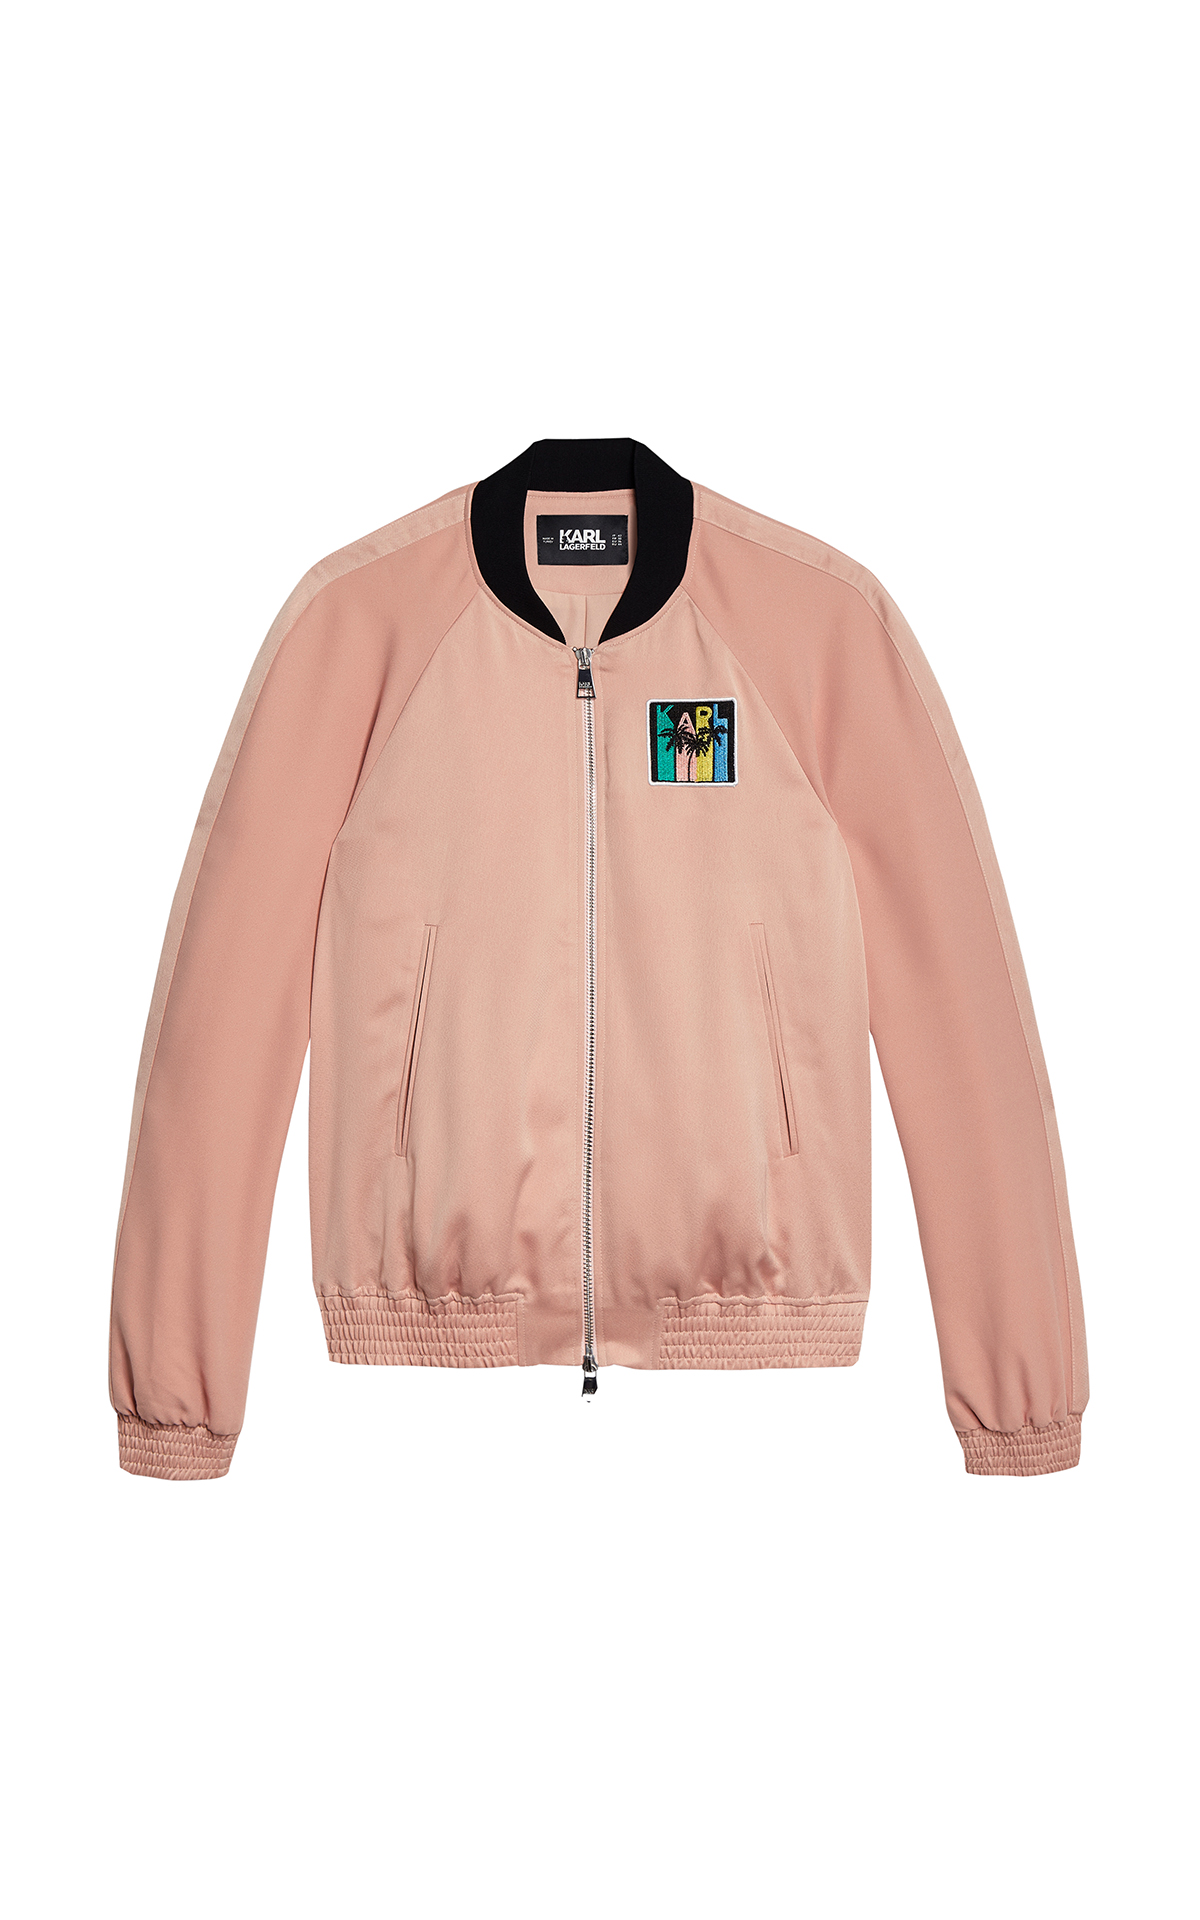 KARL LAGERFELD Satin Bomber Jacket at The Bicester Village Shopping Collection